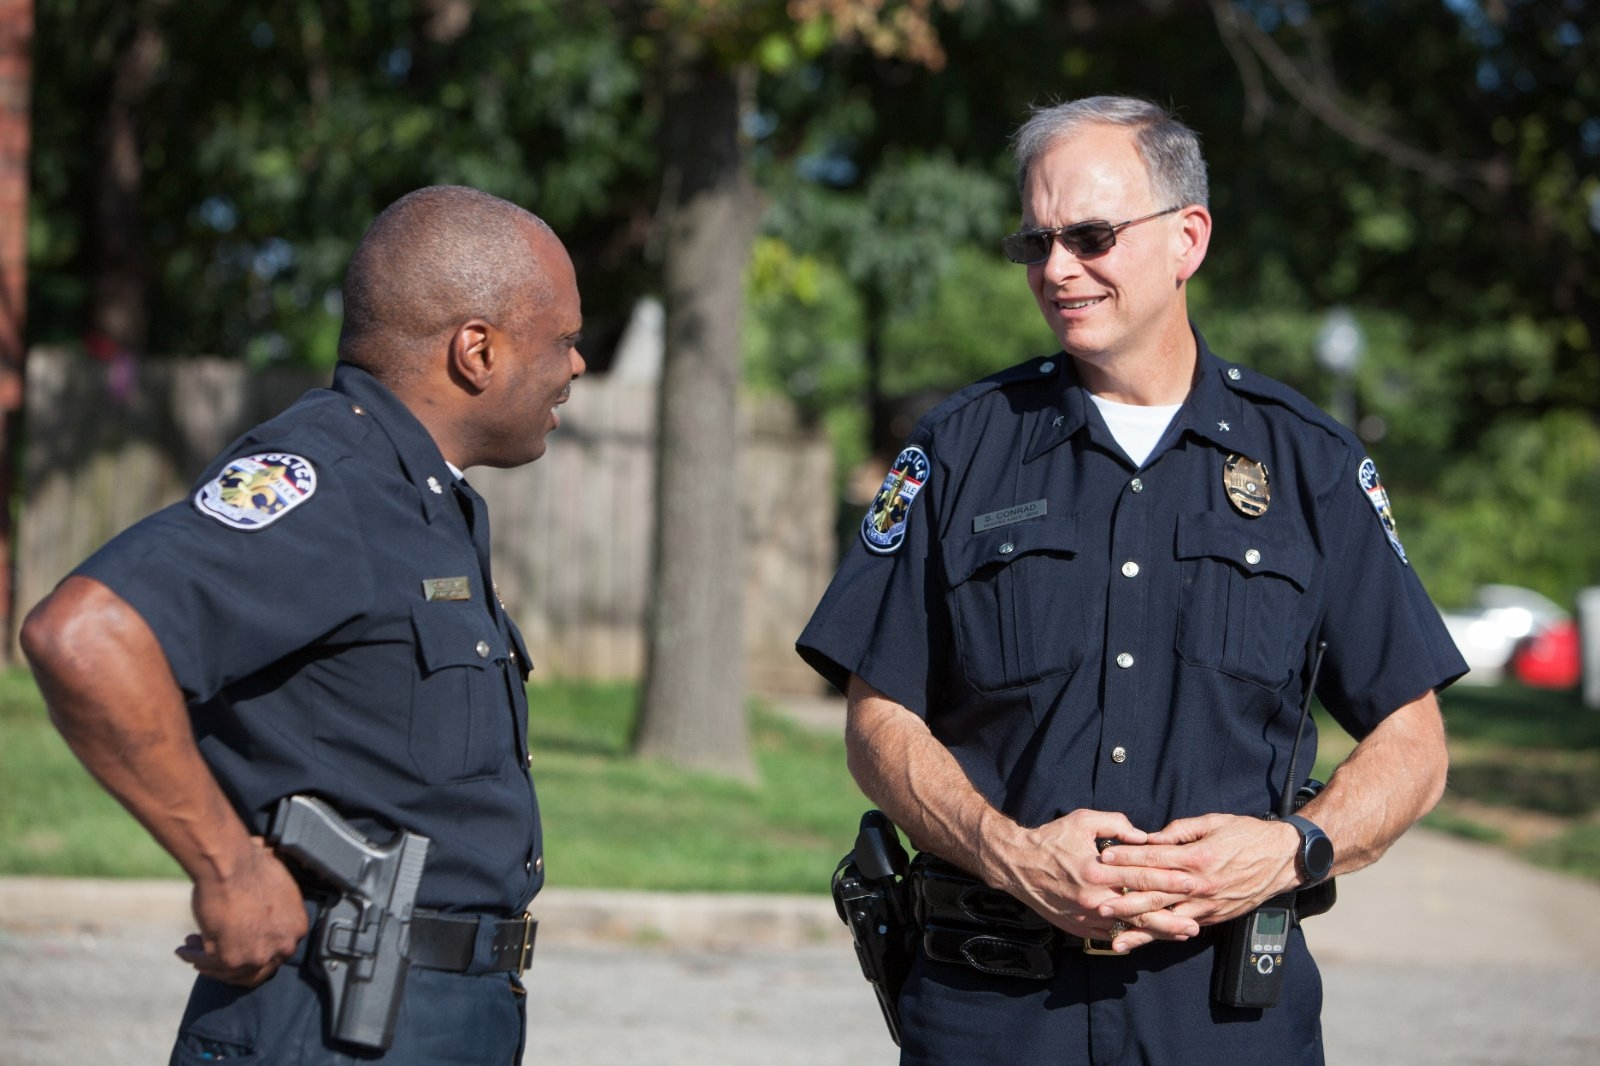 Two police officers talking..